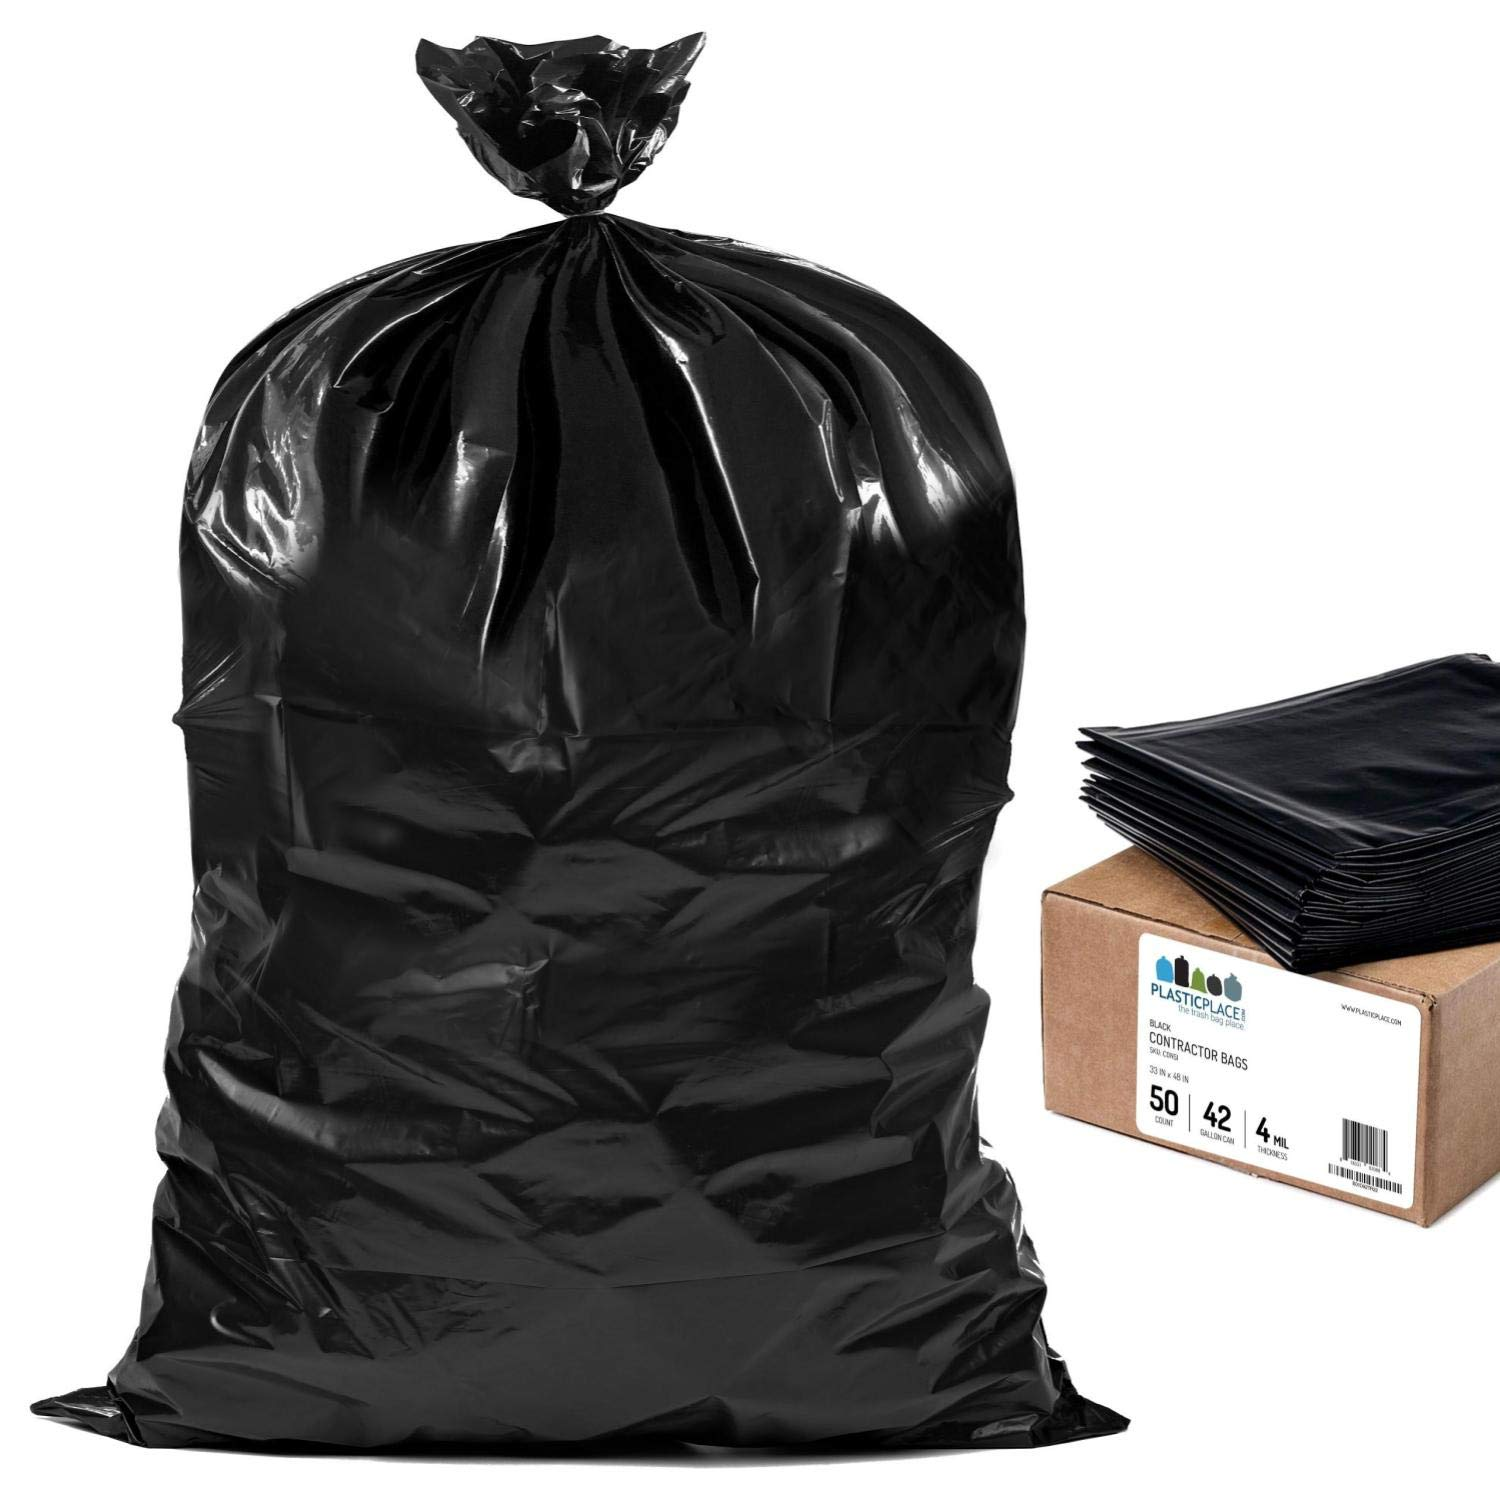 Plasticplace Contractor Trash Bags 42 Gallon │ 4.0 Mil │ Black Heavy Duty Garbage Bag │ 33'' x 48'' (50 Count) by Plasticplace